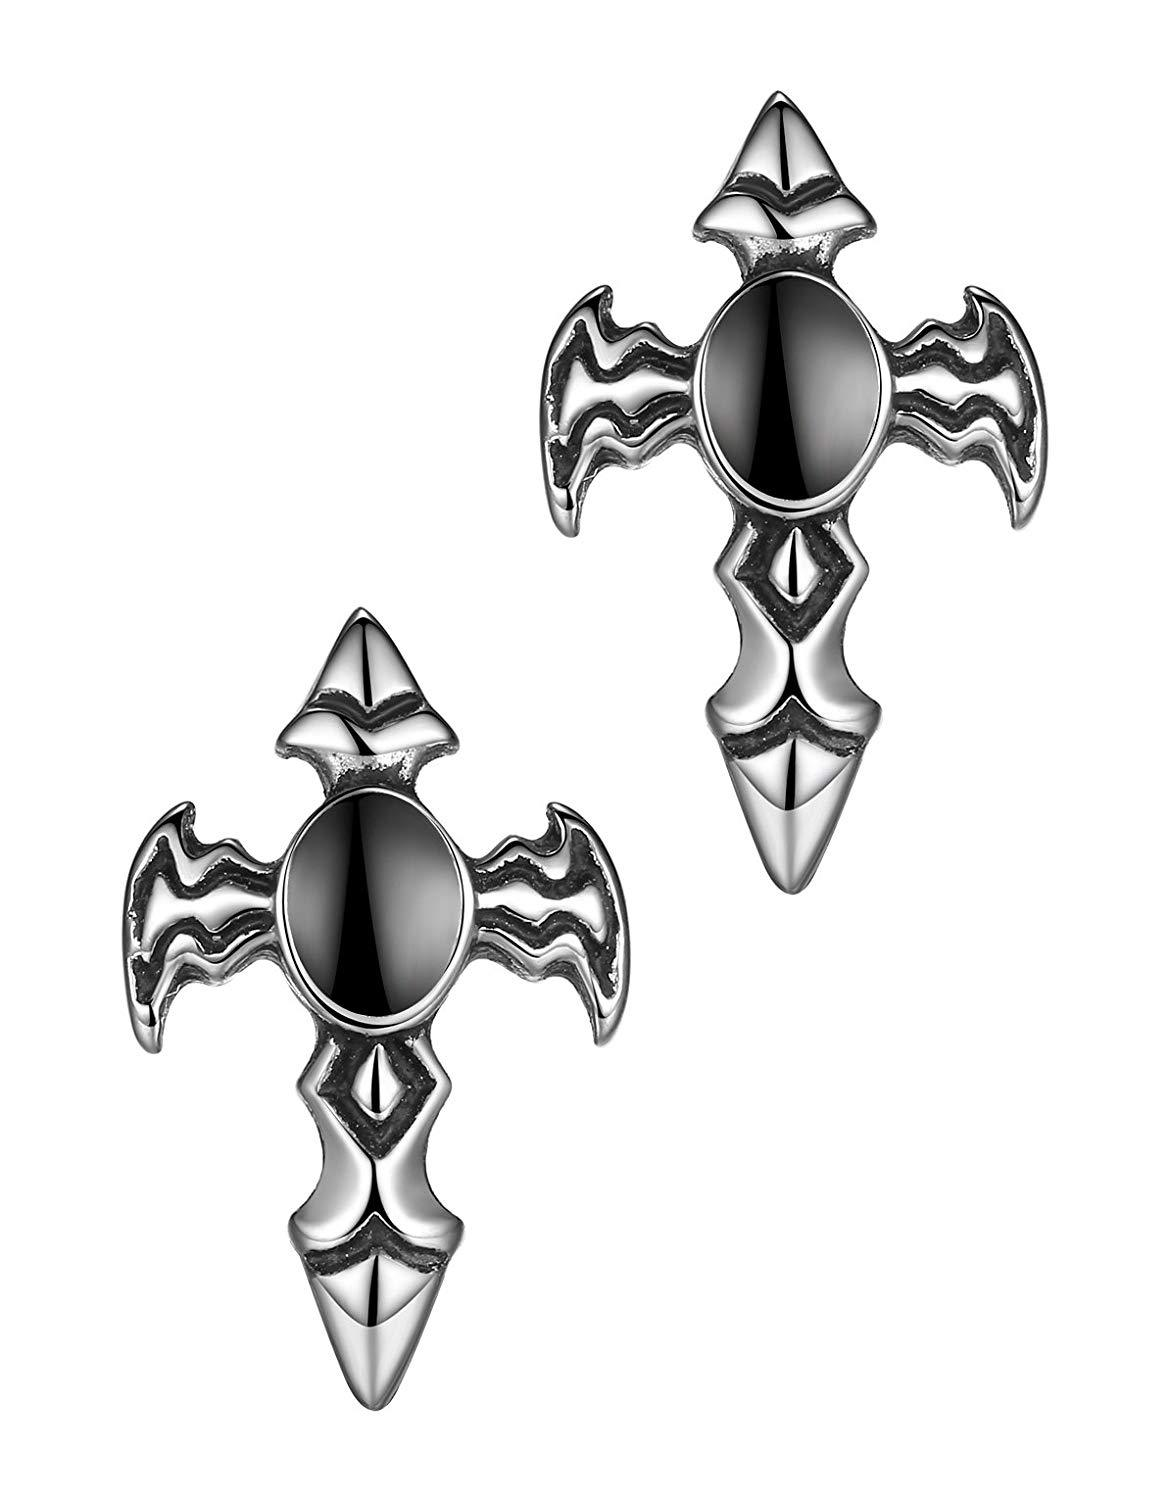 Men's Stainless Steel Fleur-de-lis Wing Cross Stud Earrings, aae018he